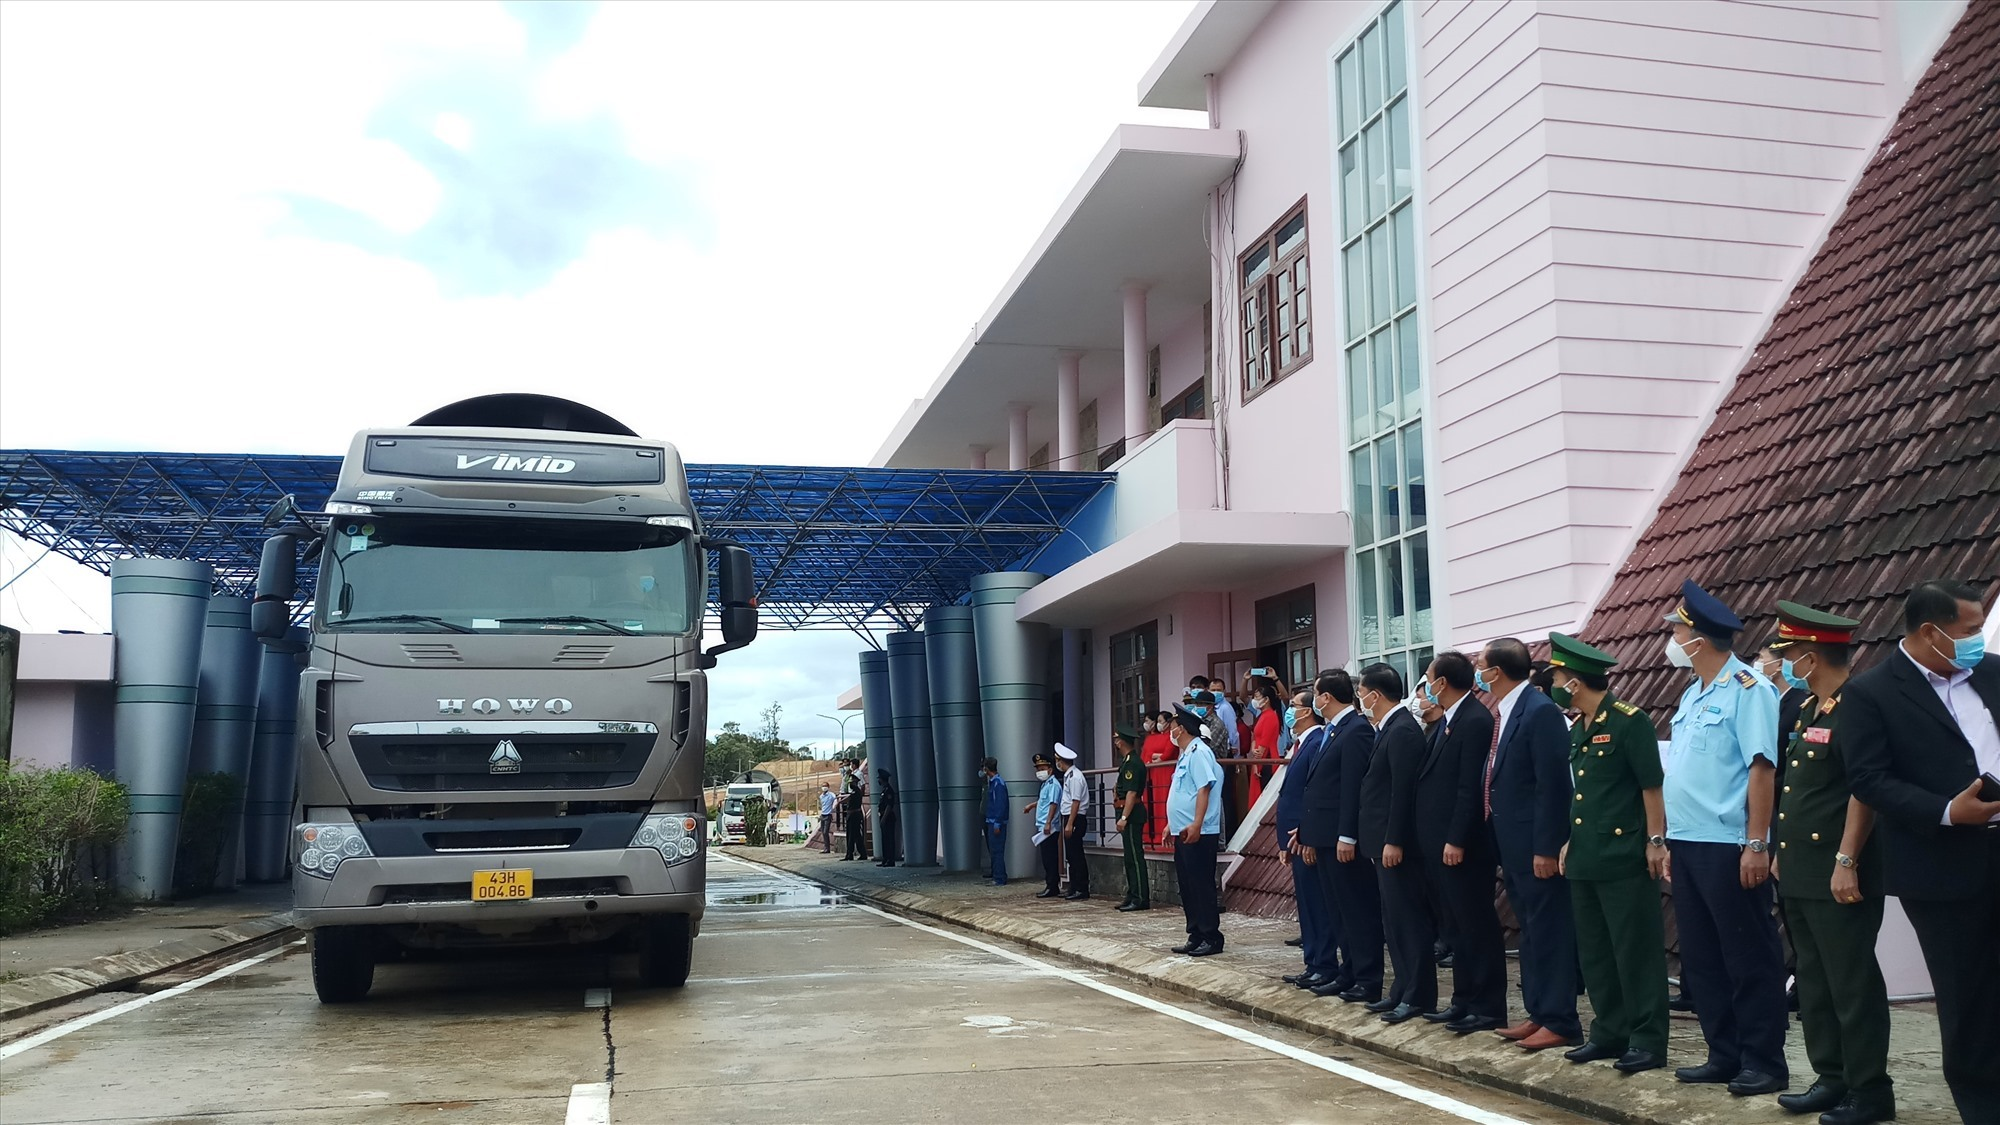 The border gate opened for traffic, fostering socio-economic development and friendship between Quang Nam and Sekong provinces in particular and Vietnam and Laos in general.